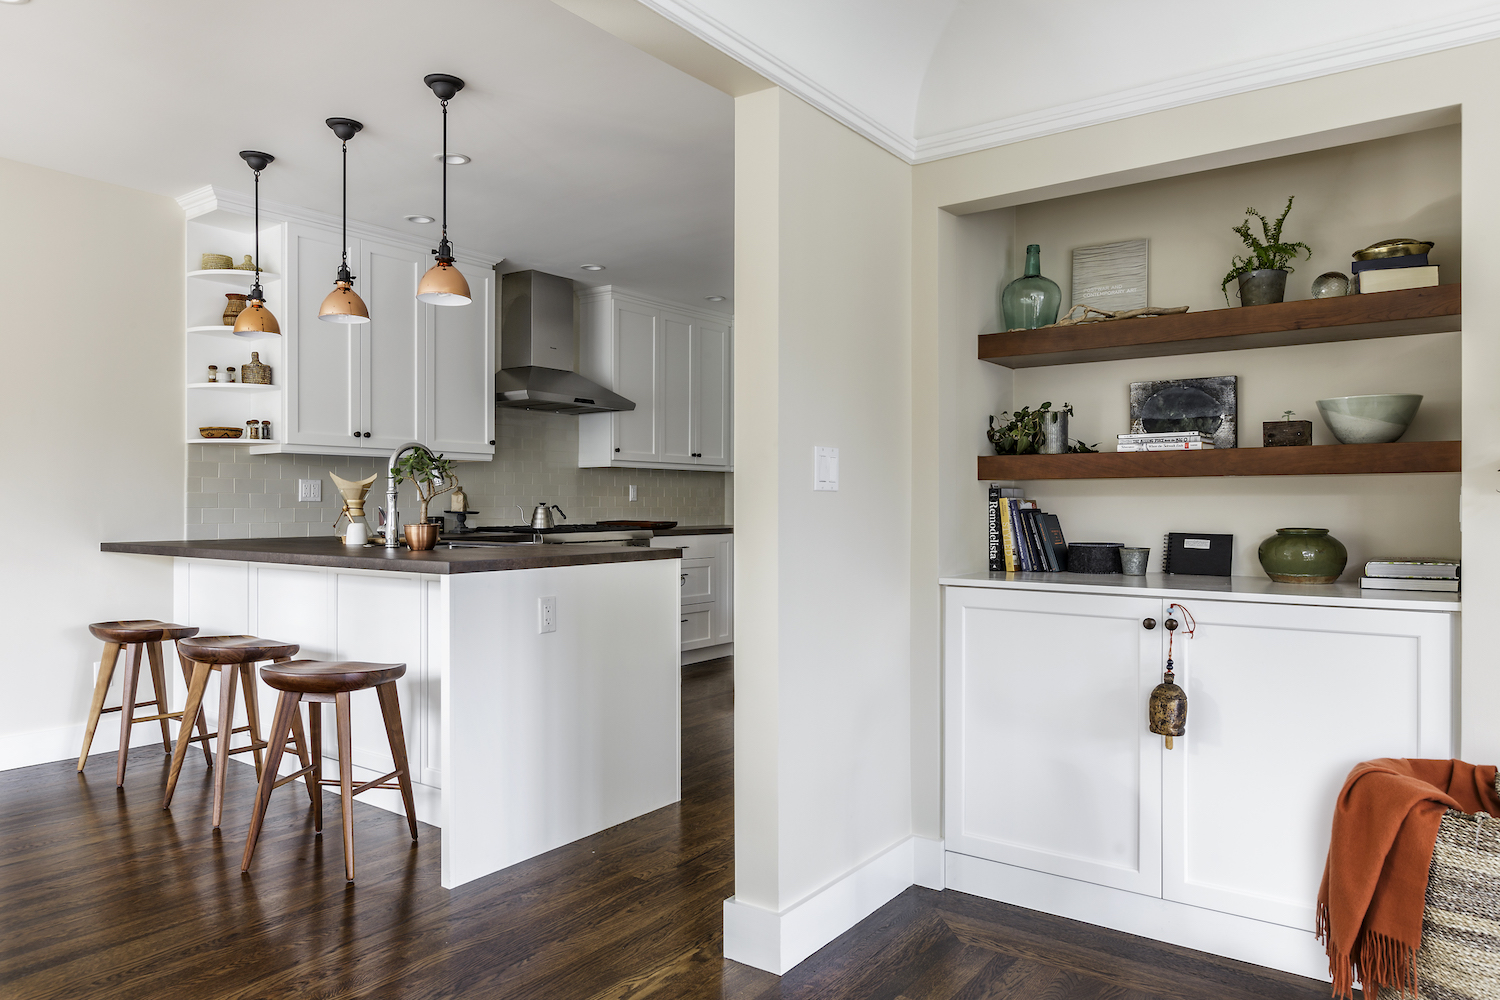 kitchen with white cabinets and stainless steel appliances and pendant lighting and bar seating.jpg